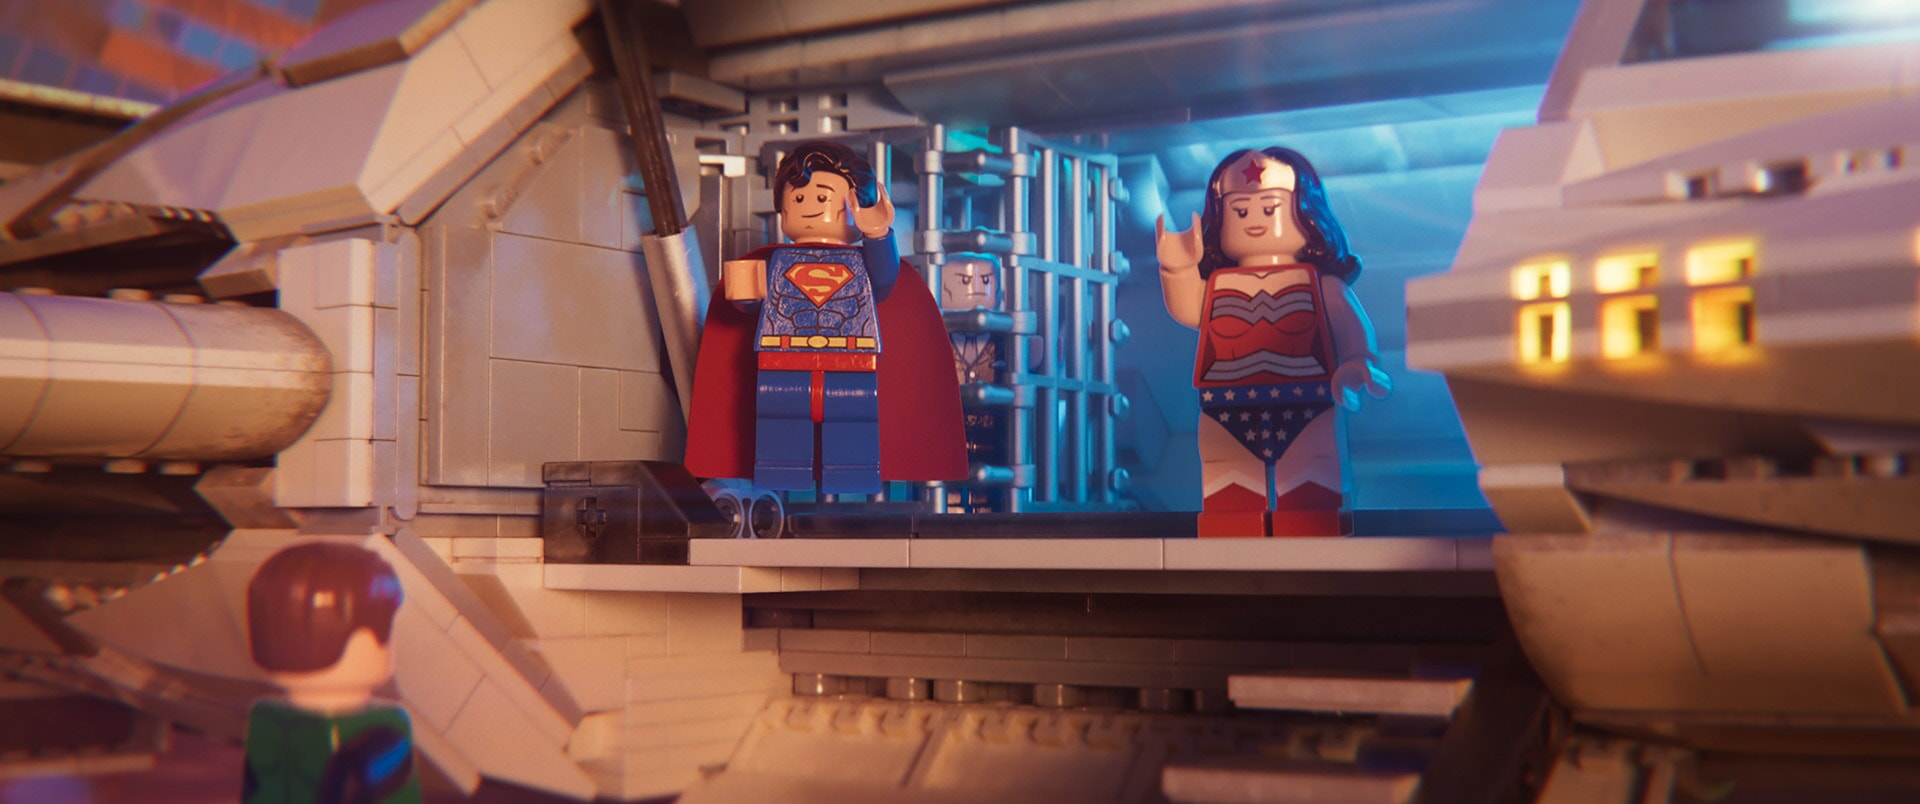 (L-R) Superman (CHANNING TATUM) and Wonder Woman (COBIE SMULDERS)